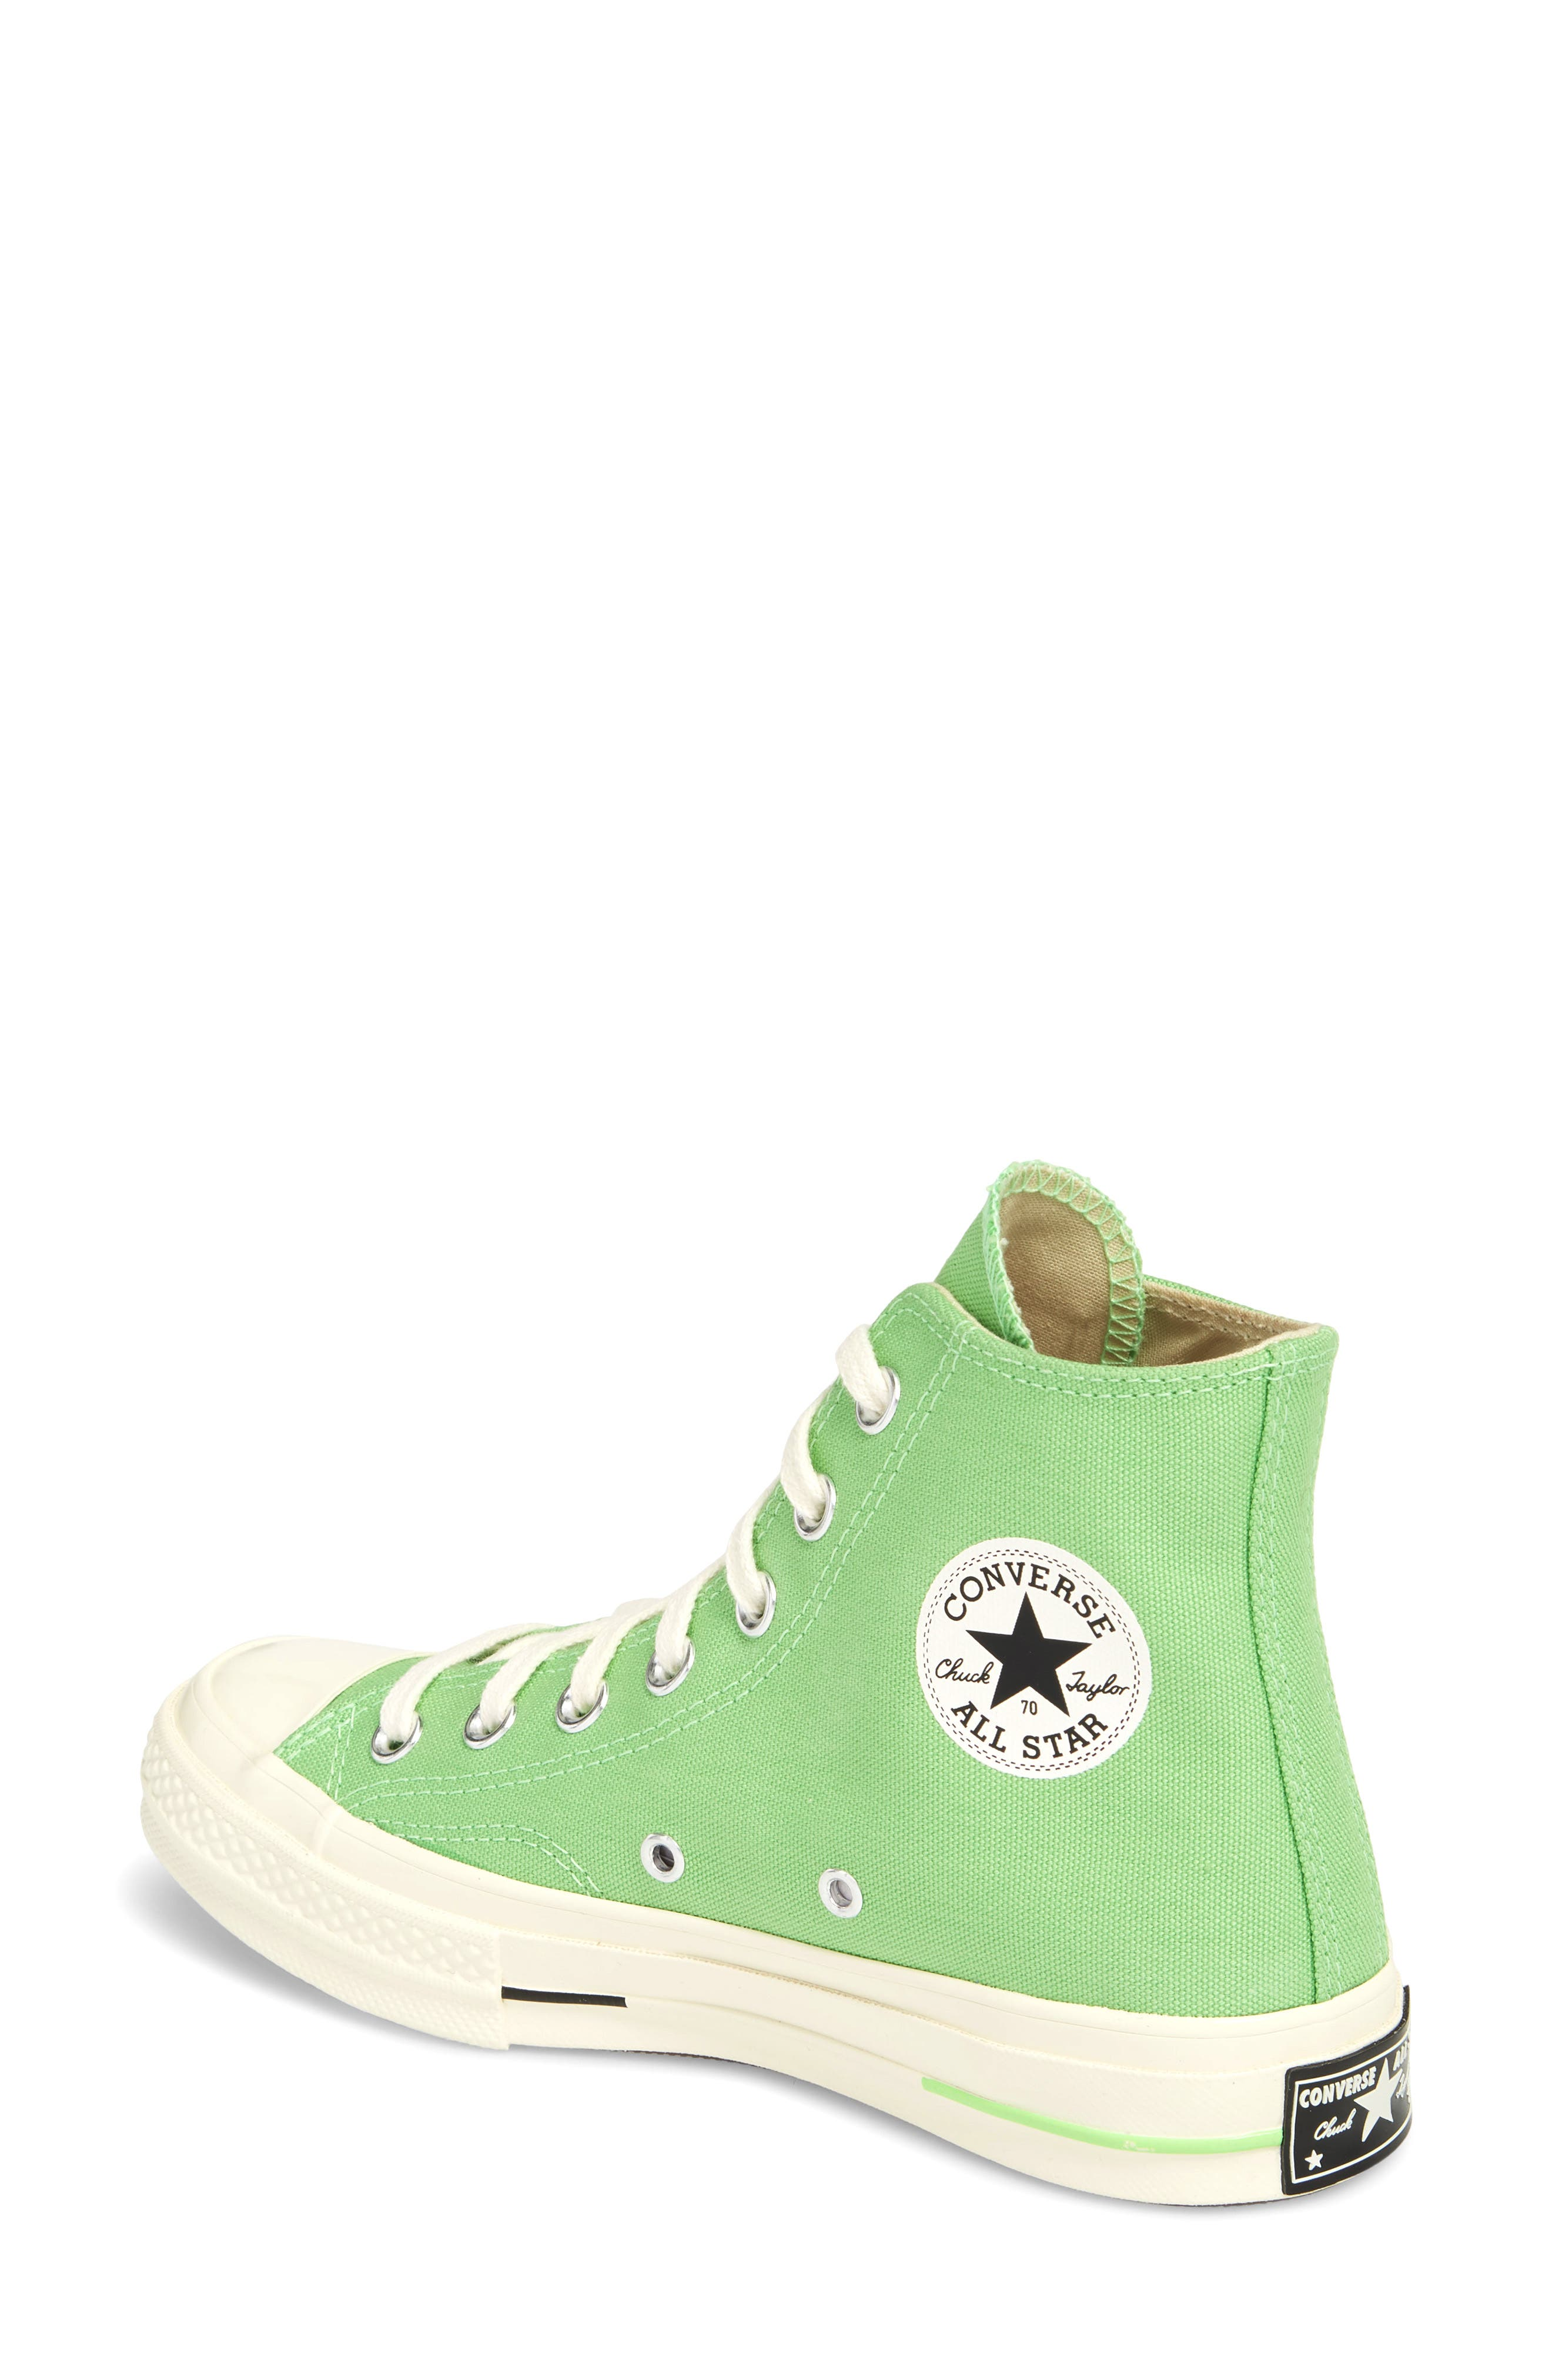 Chuck Taylor<sup>®</sup> All Star<sup>®</sup> 70 Brights High Top Sneaker,                             Alternate thumbnail 2, color,                             Illusion Green